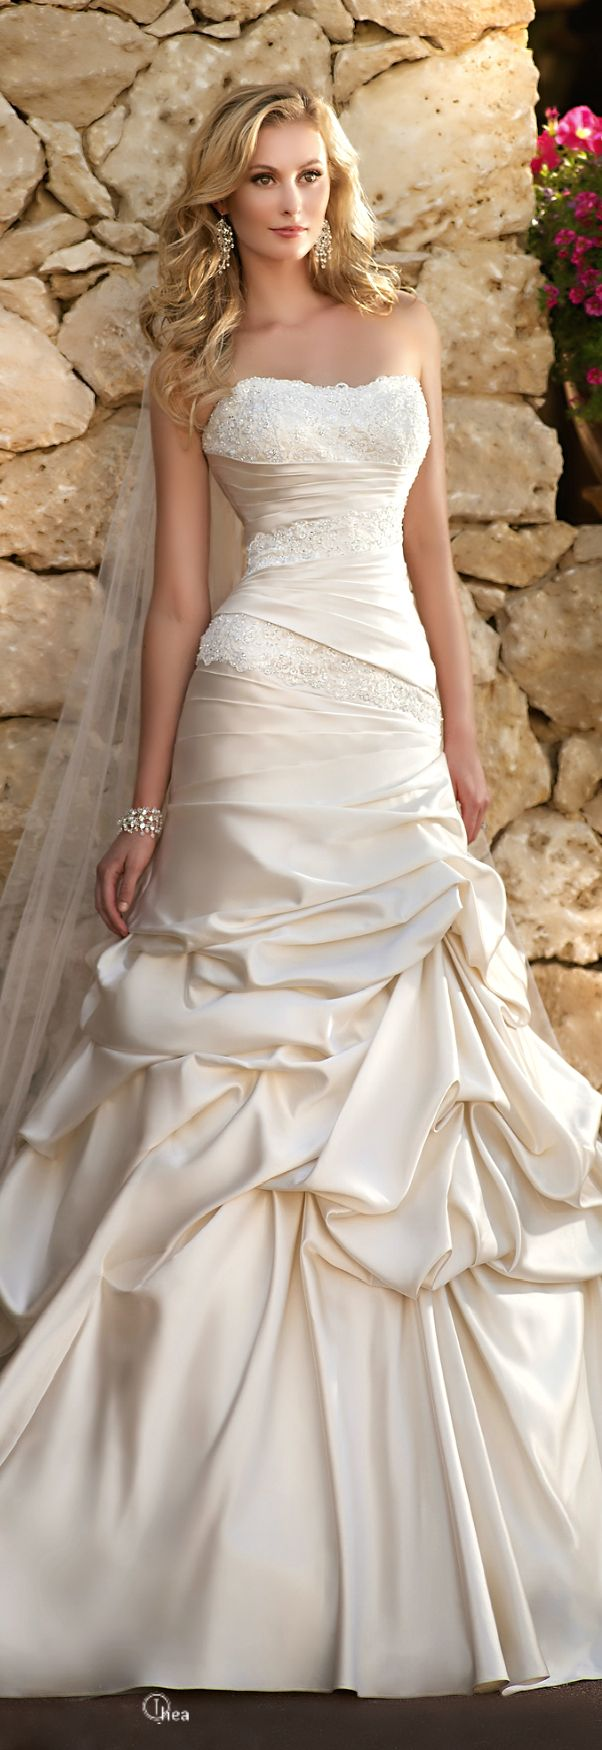 Wedding Dress ● Stella York Not sure but image idea can be used for one of the main gowns.